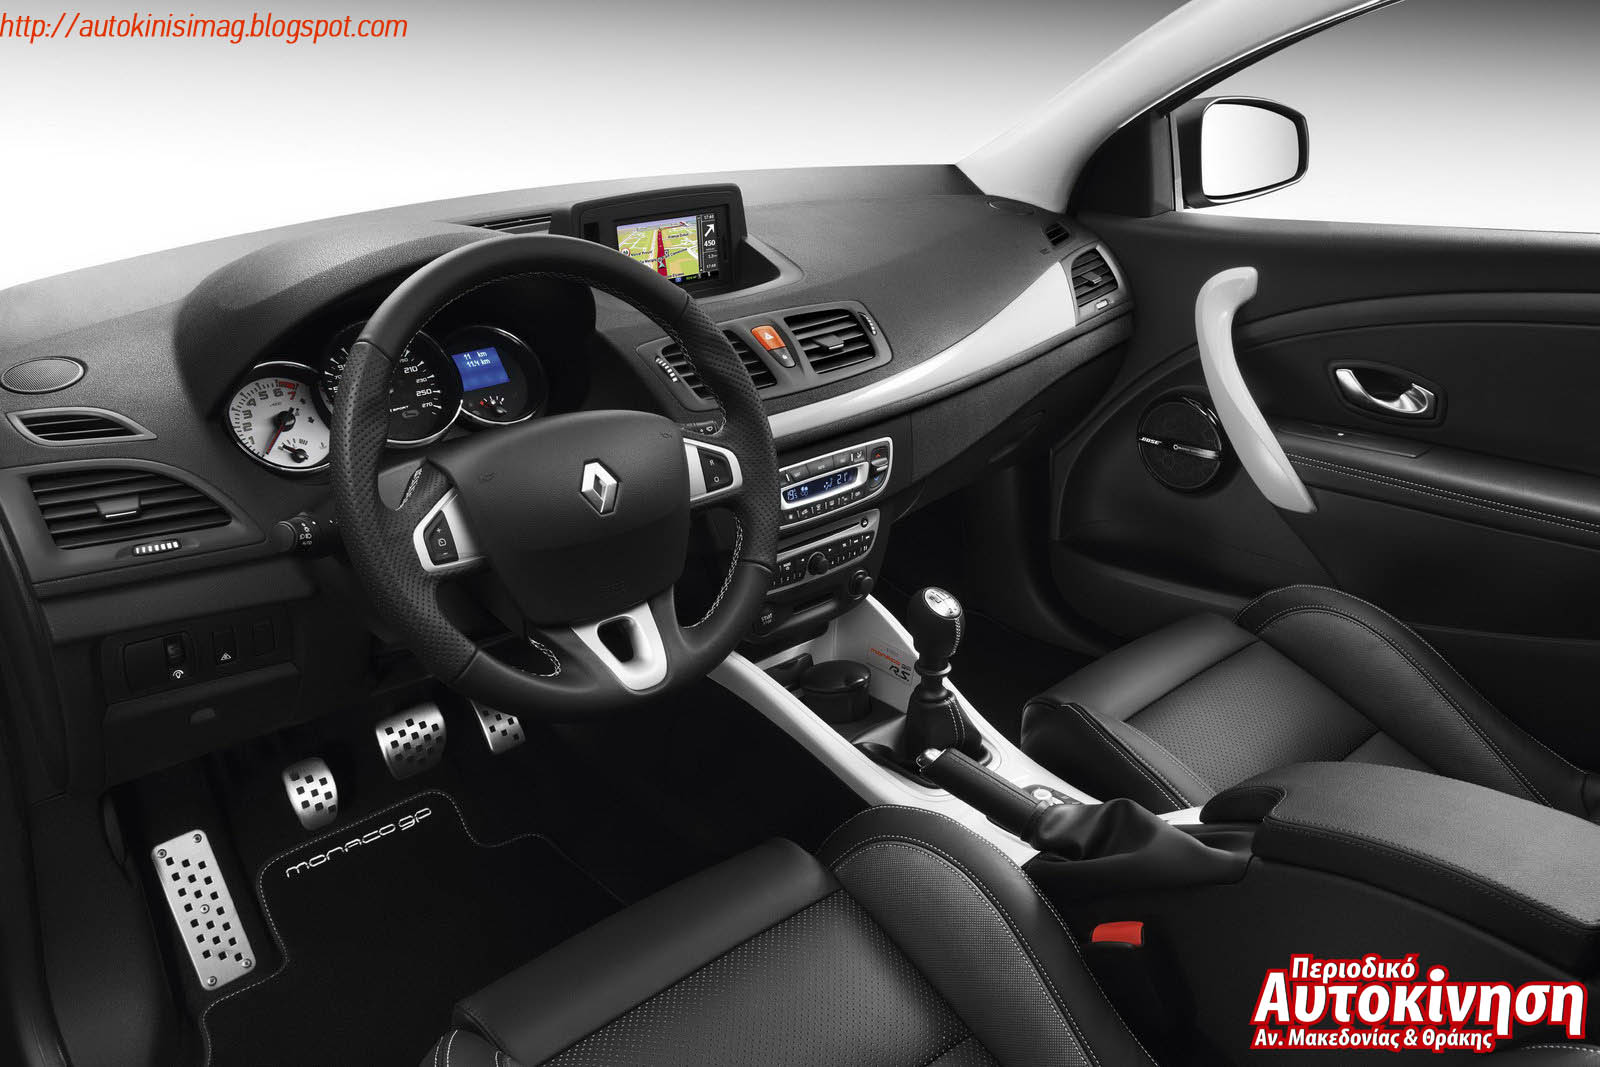 renault megane coupe monaco gp autokinisimag. Black Bedroom Furniture Sets. Home Design Ideas